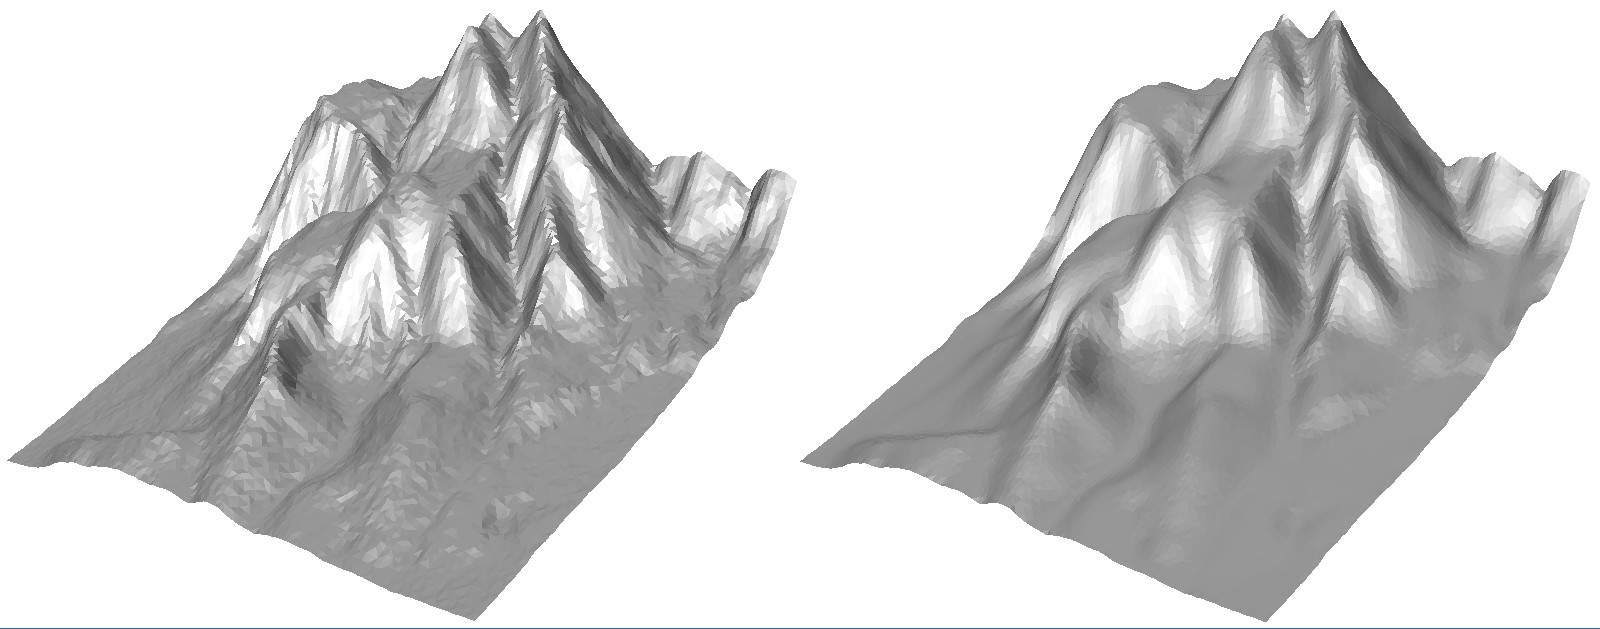 Weighted Laplacian Mesh Smoothing in C++